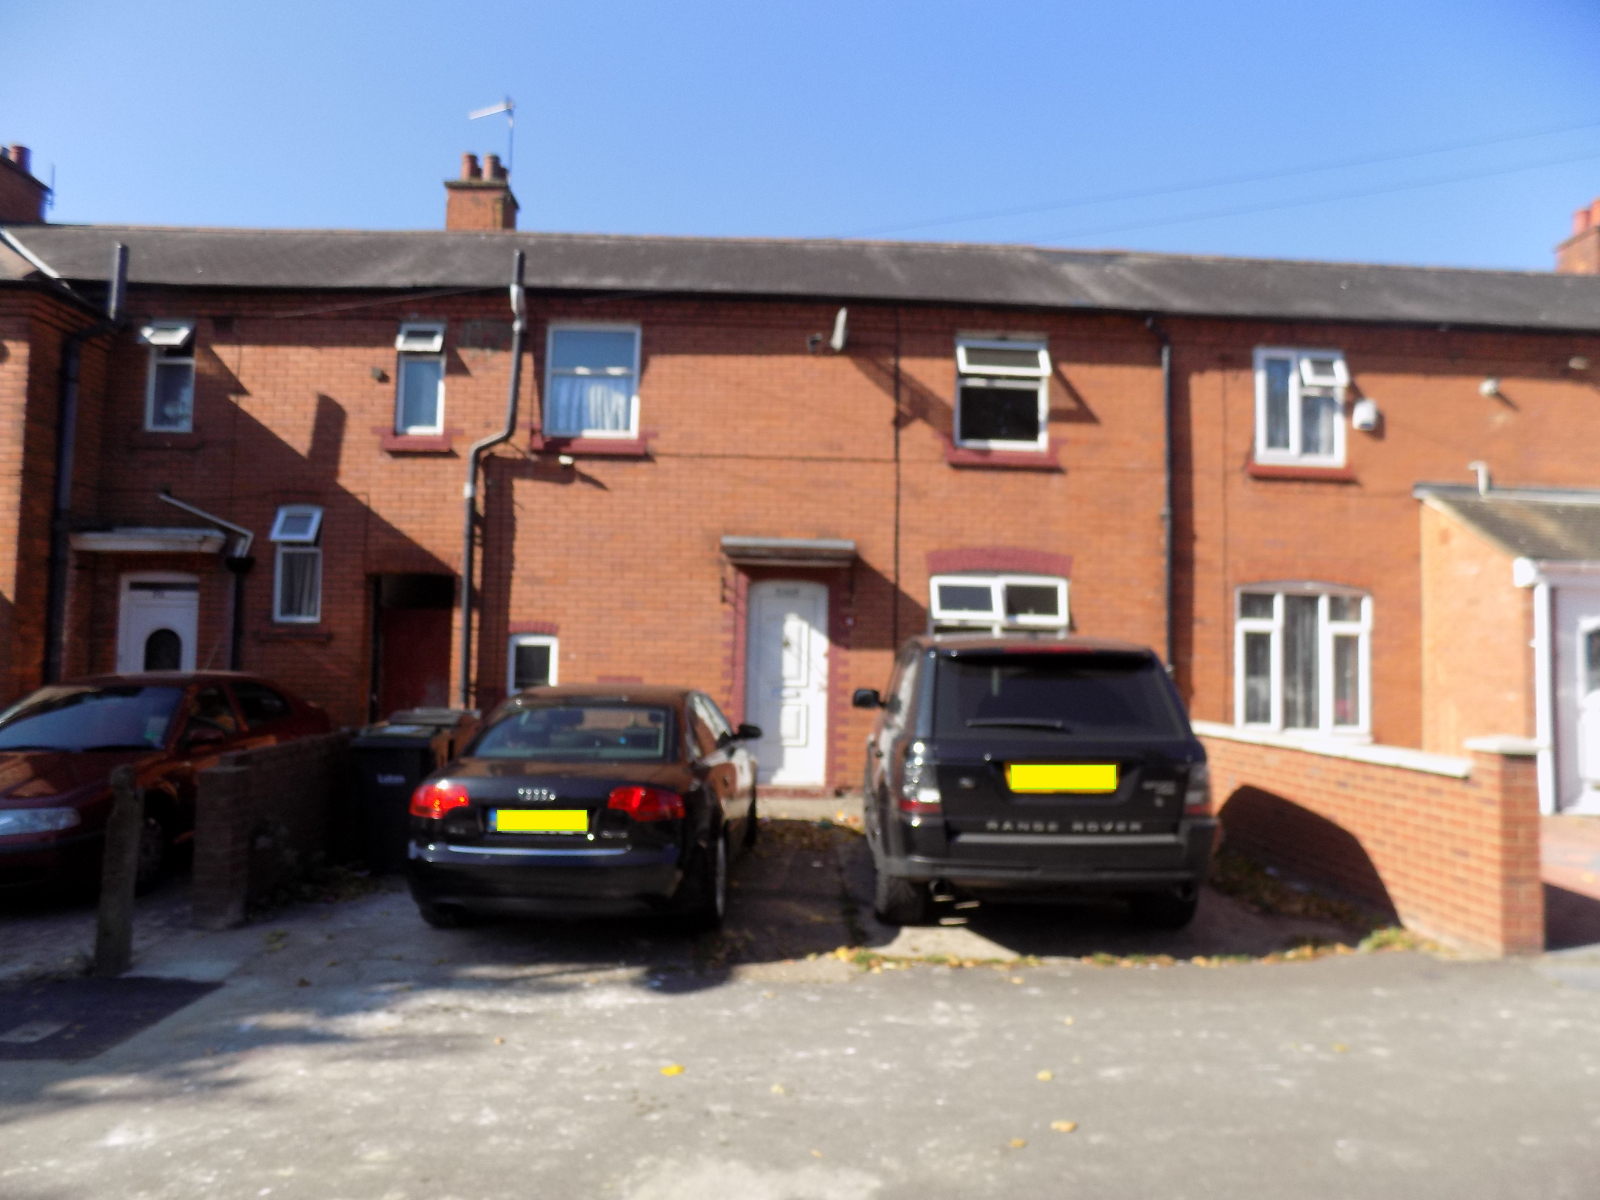 Flats For Rent In Luton 1 Bedroom 28 Images Luton 1 Bed Flat New Bedford Road Lu1 To Rent